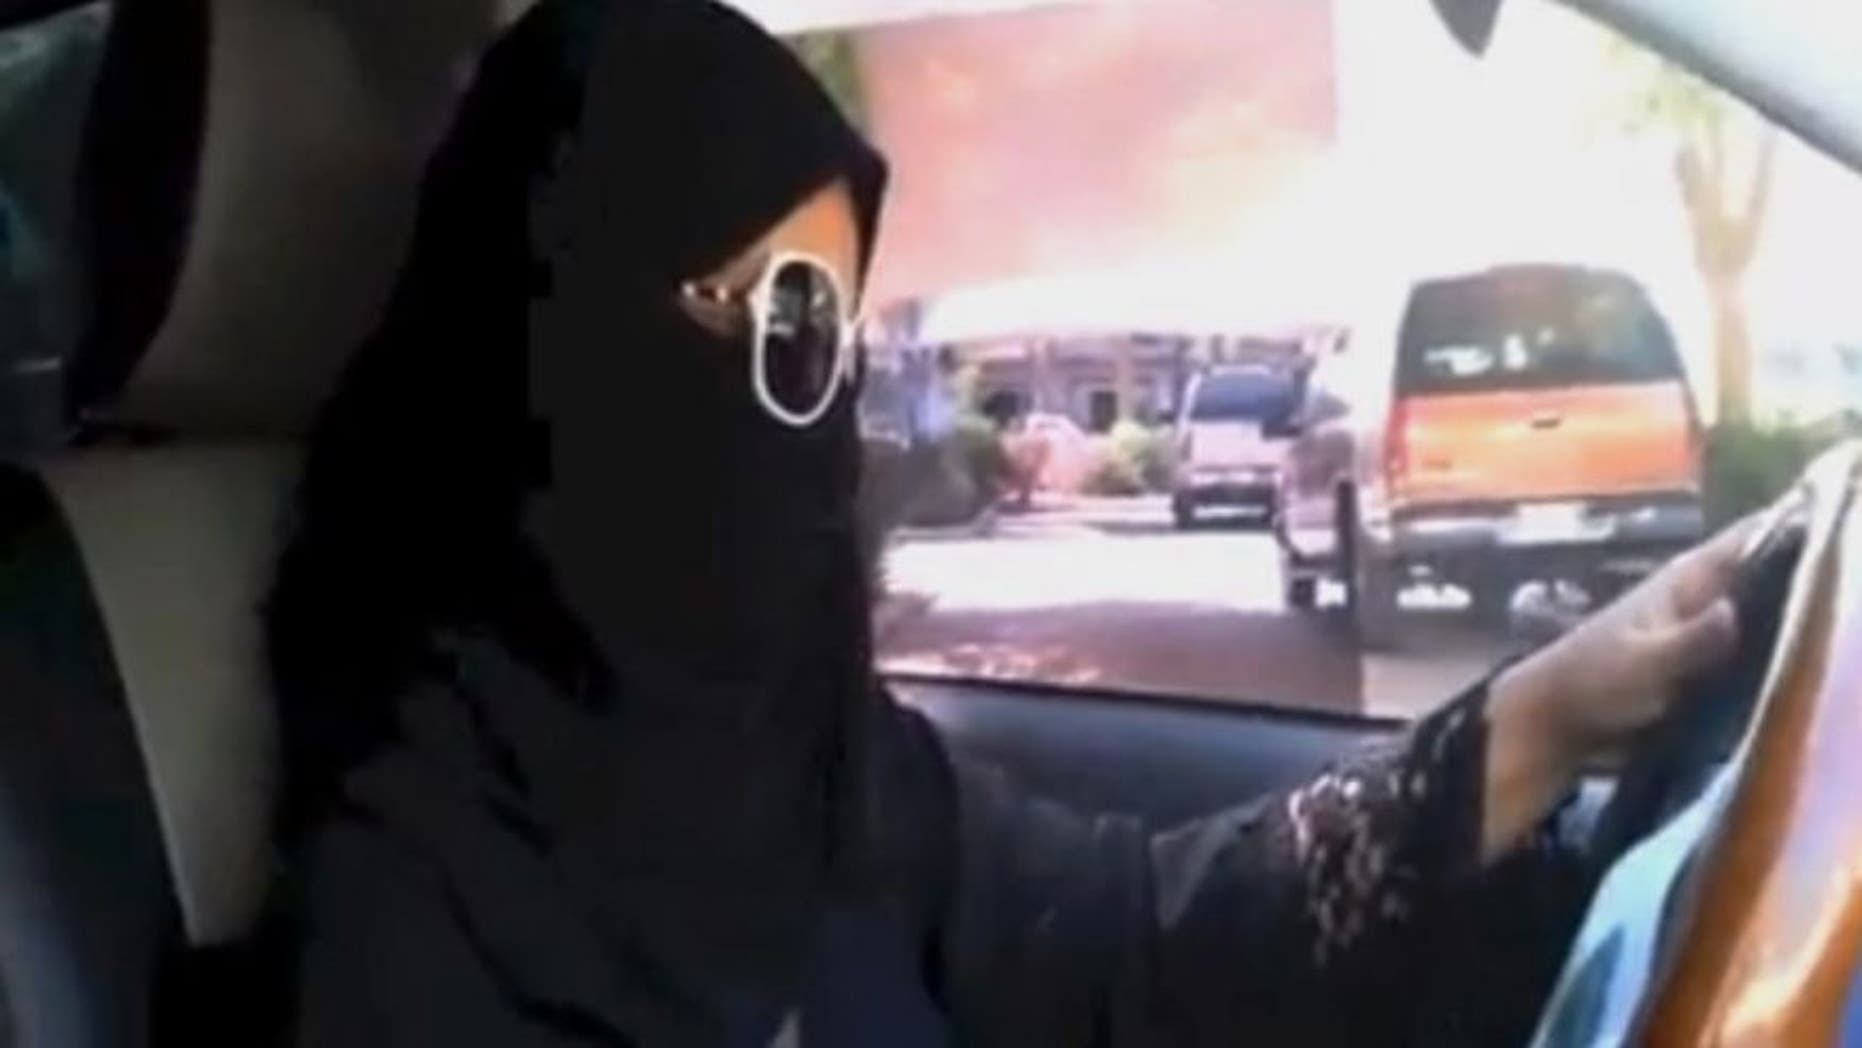 Oct. 26, 2013: In this image made from video provided by the Driving campaign, which has been authenticated based on its contents and other AP reporting, a Saudi woman drives a vehicle in Riyadh, Saudi Arabia.